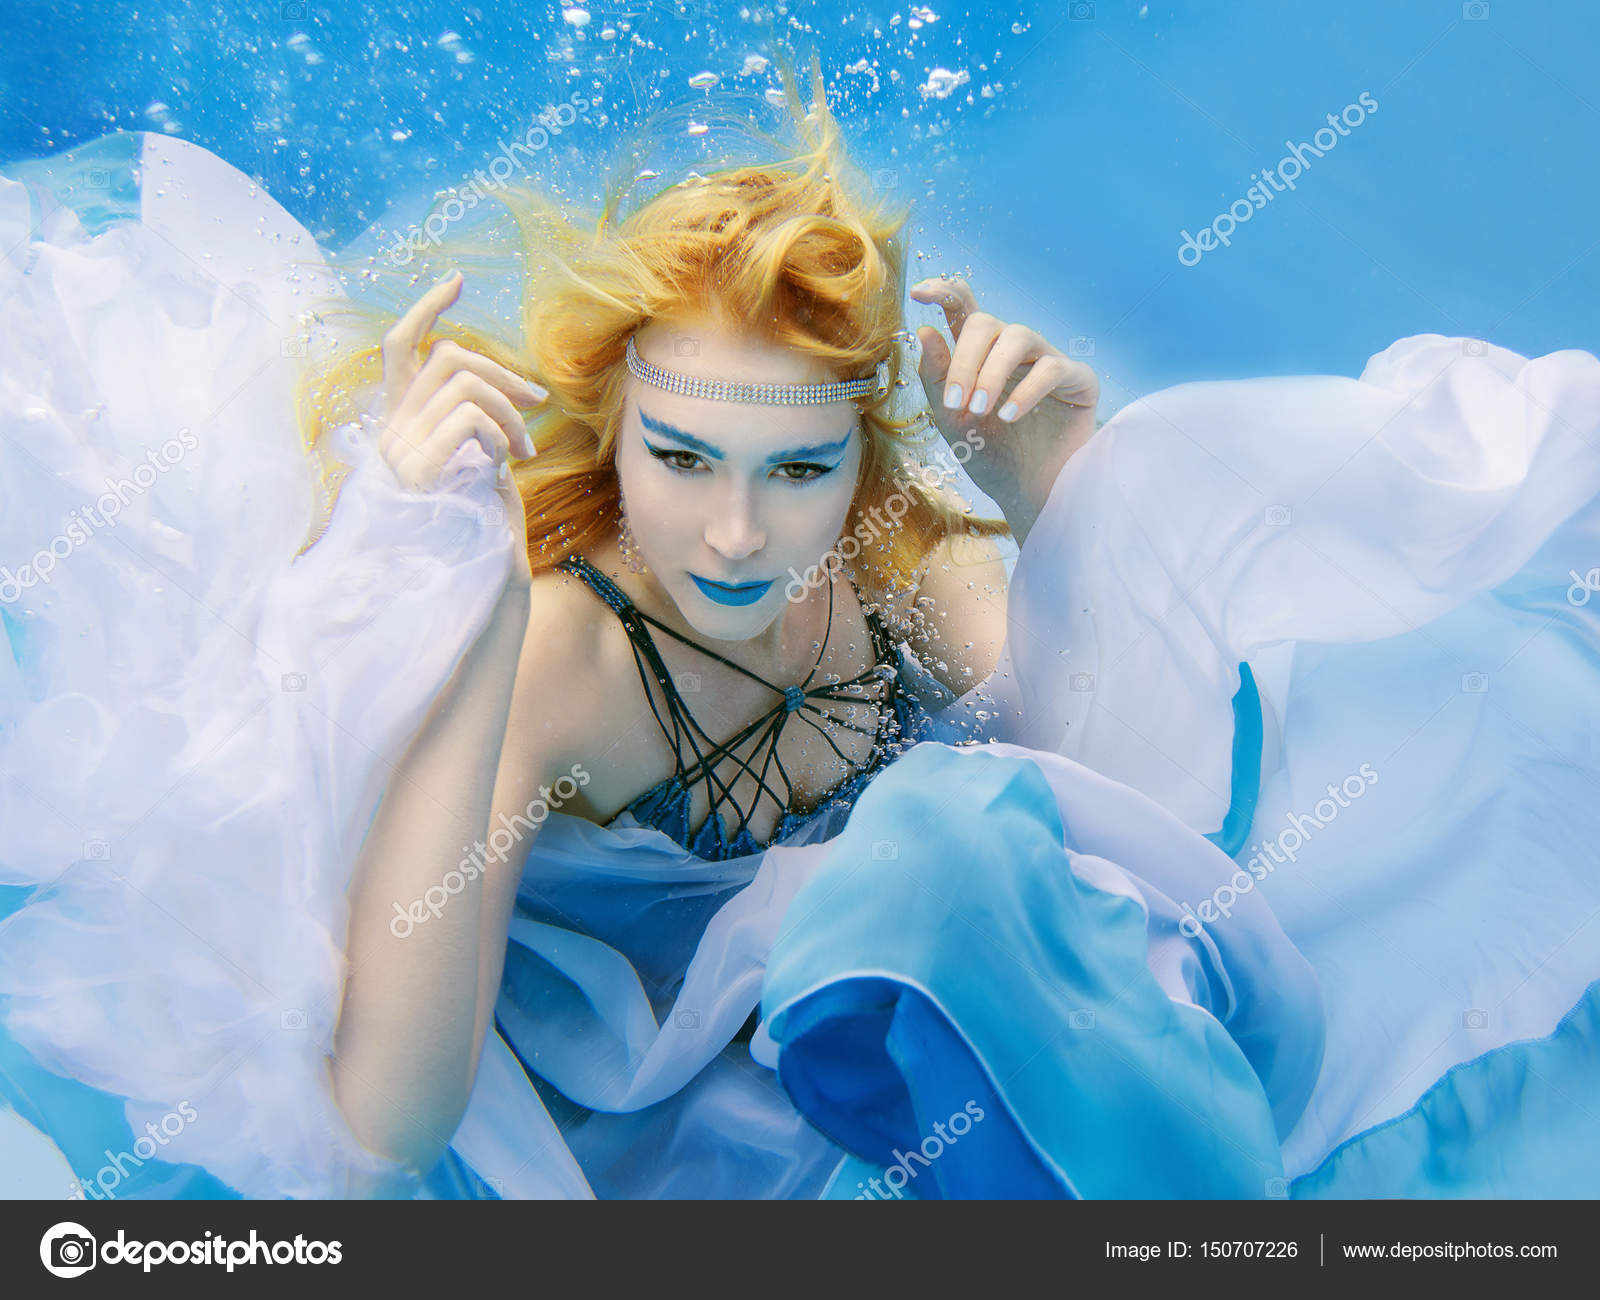 Underwater fashion portrait of beautiful blonde young woman